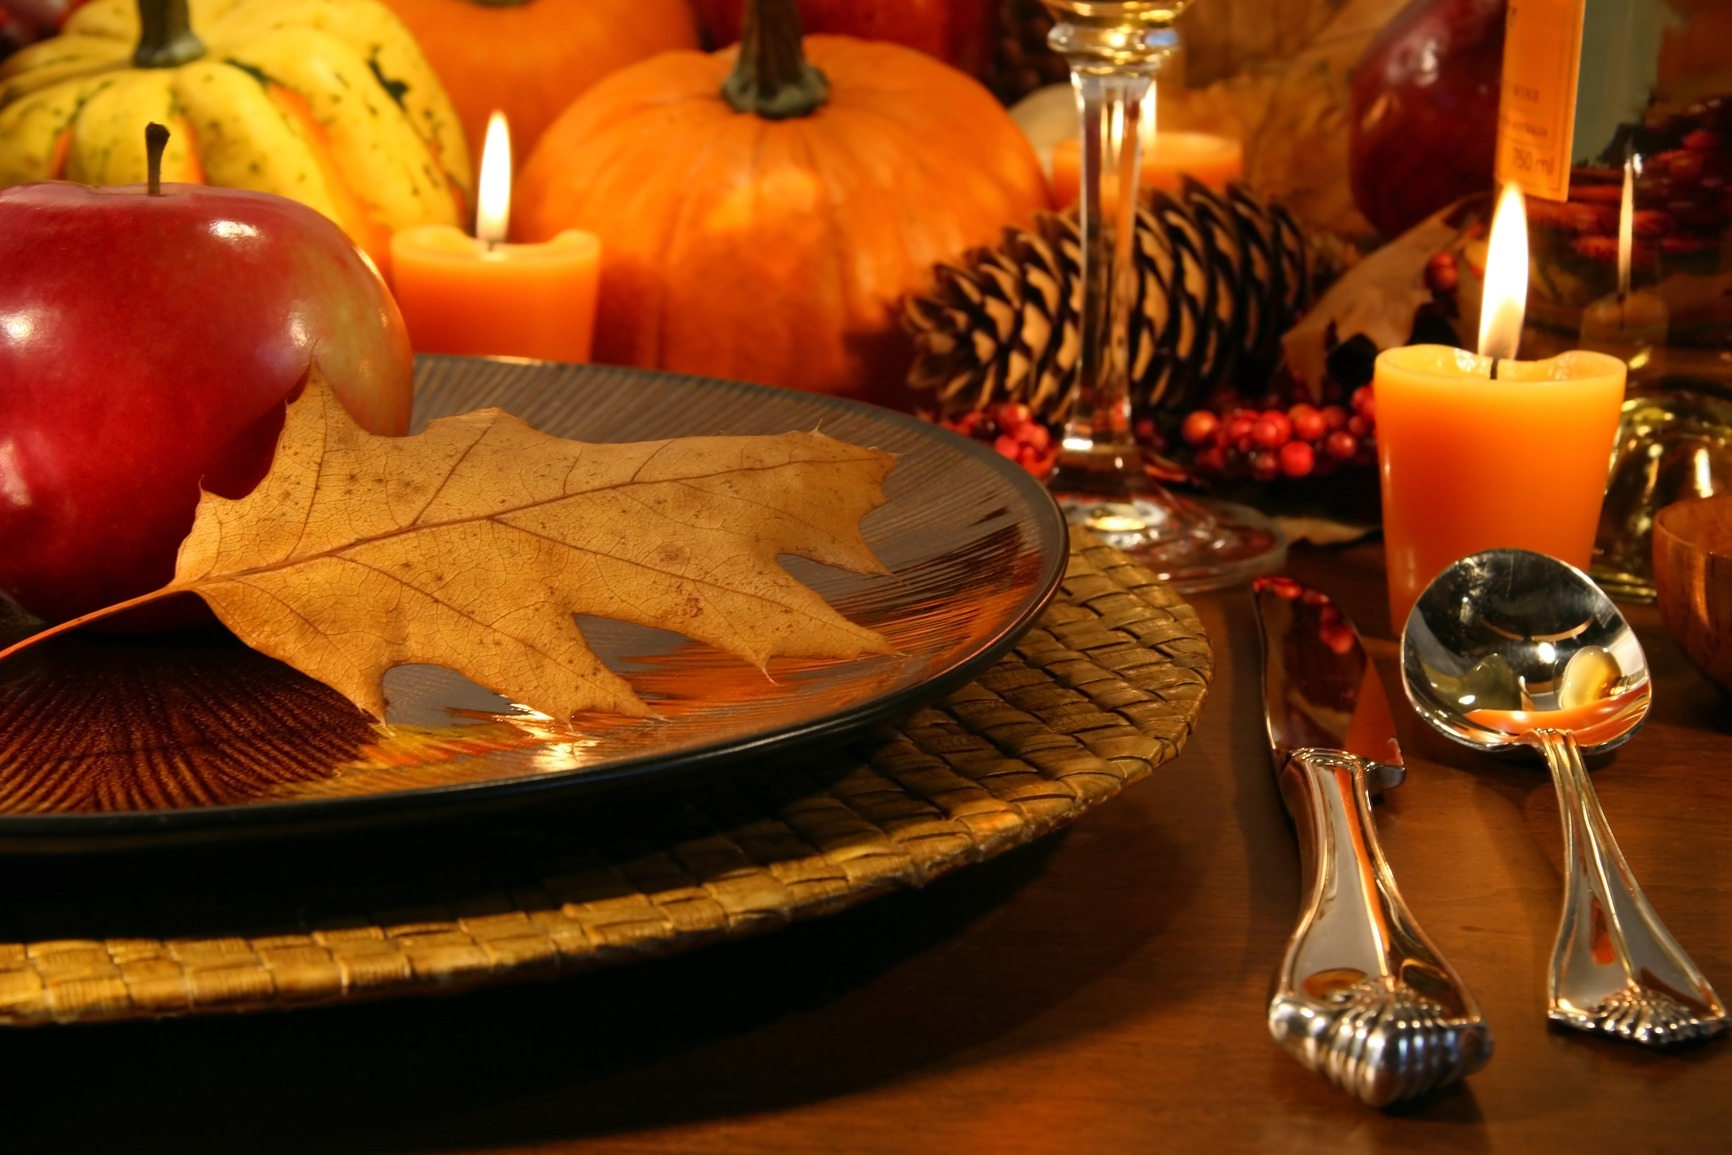 5 Thanksgiving Fixin's That Will Make Your Guests' Mouths Water